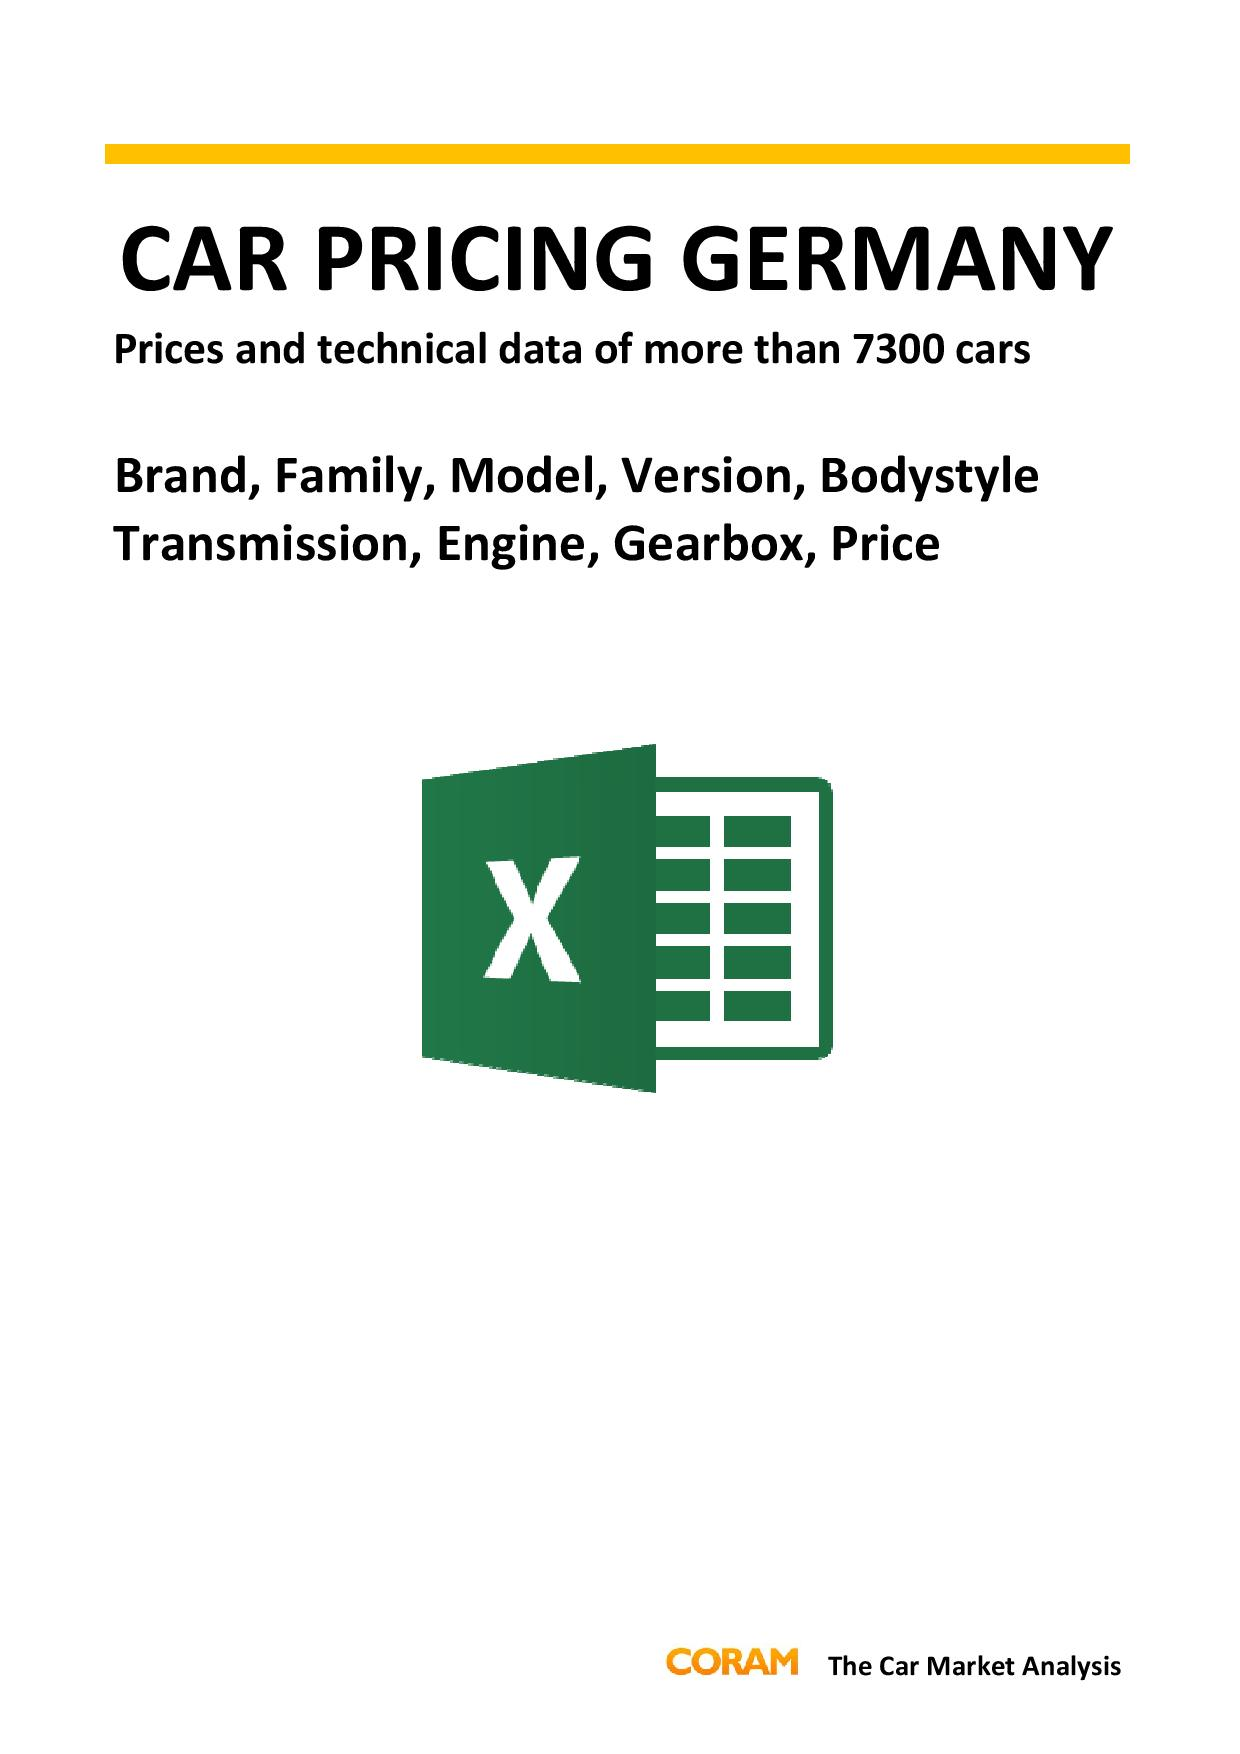 Car Pricing Germany PC : July 2016